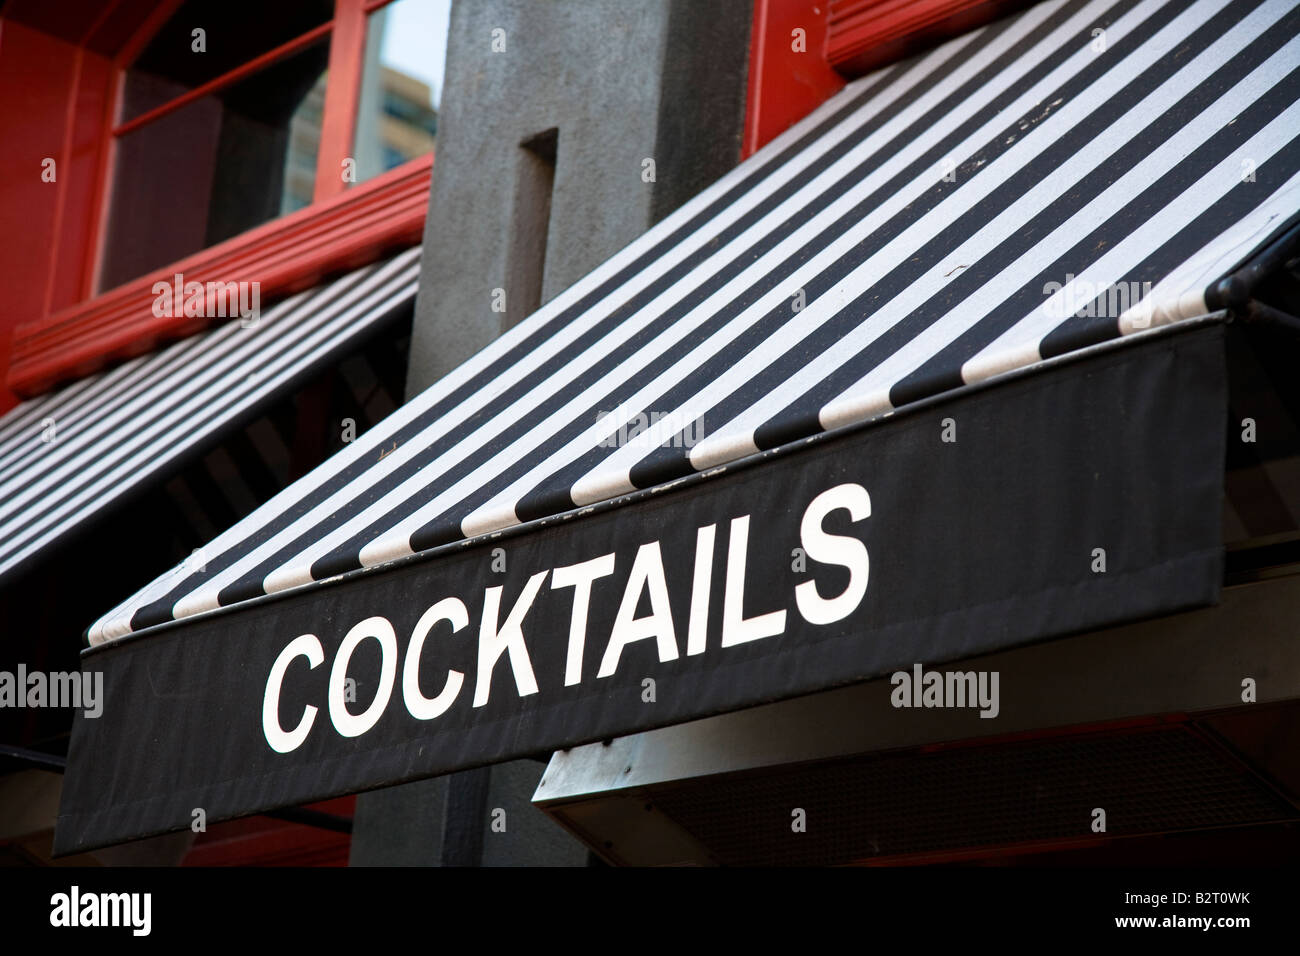 Cocktail display sign on striped black and white window canopy Gaslamp historic area of San Diego, California, USA - Stock Image